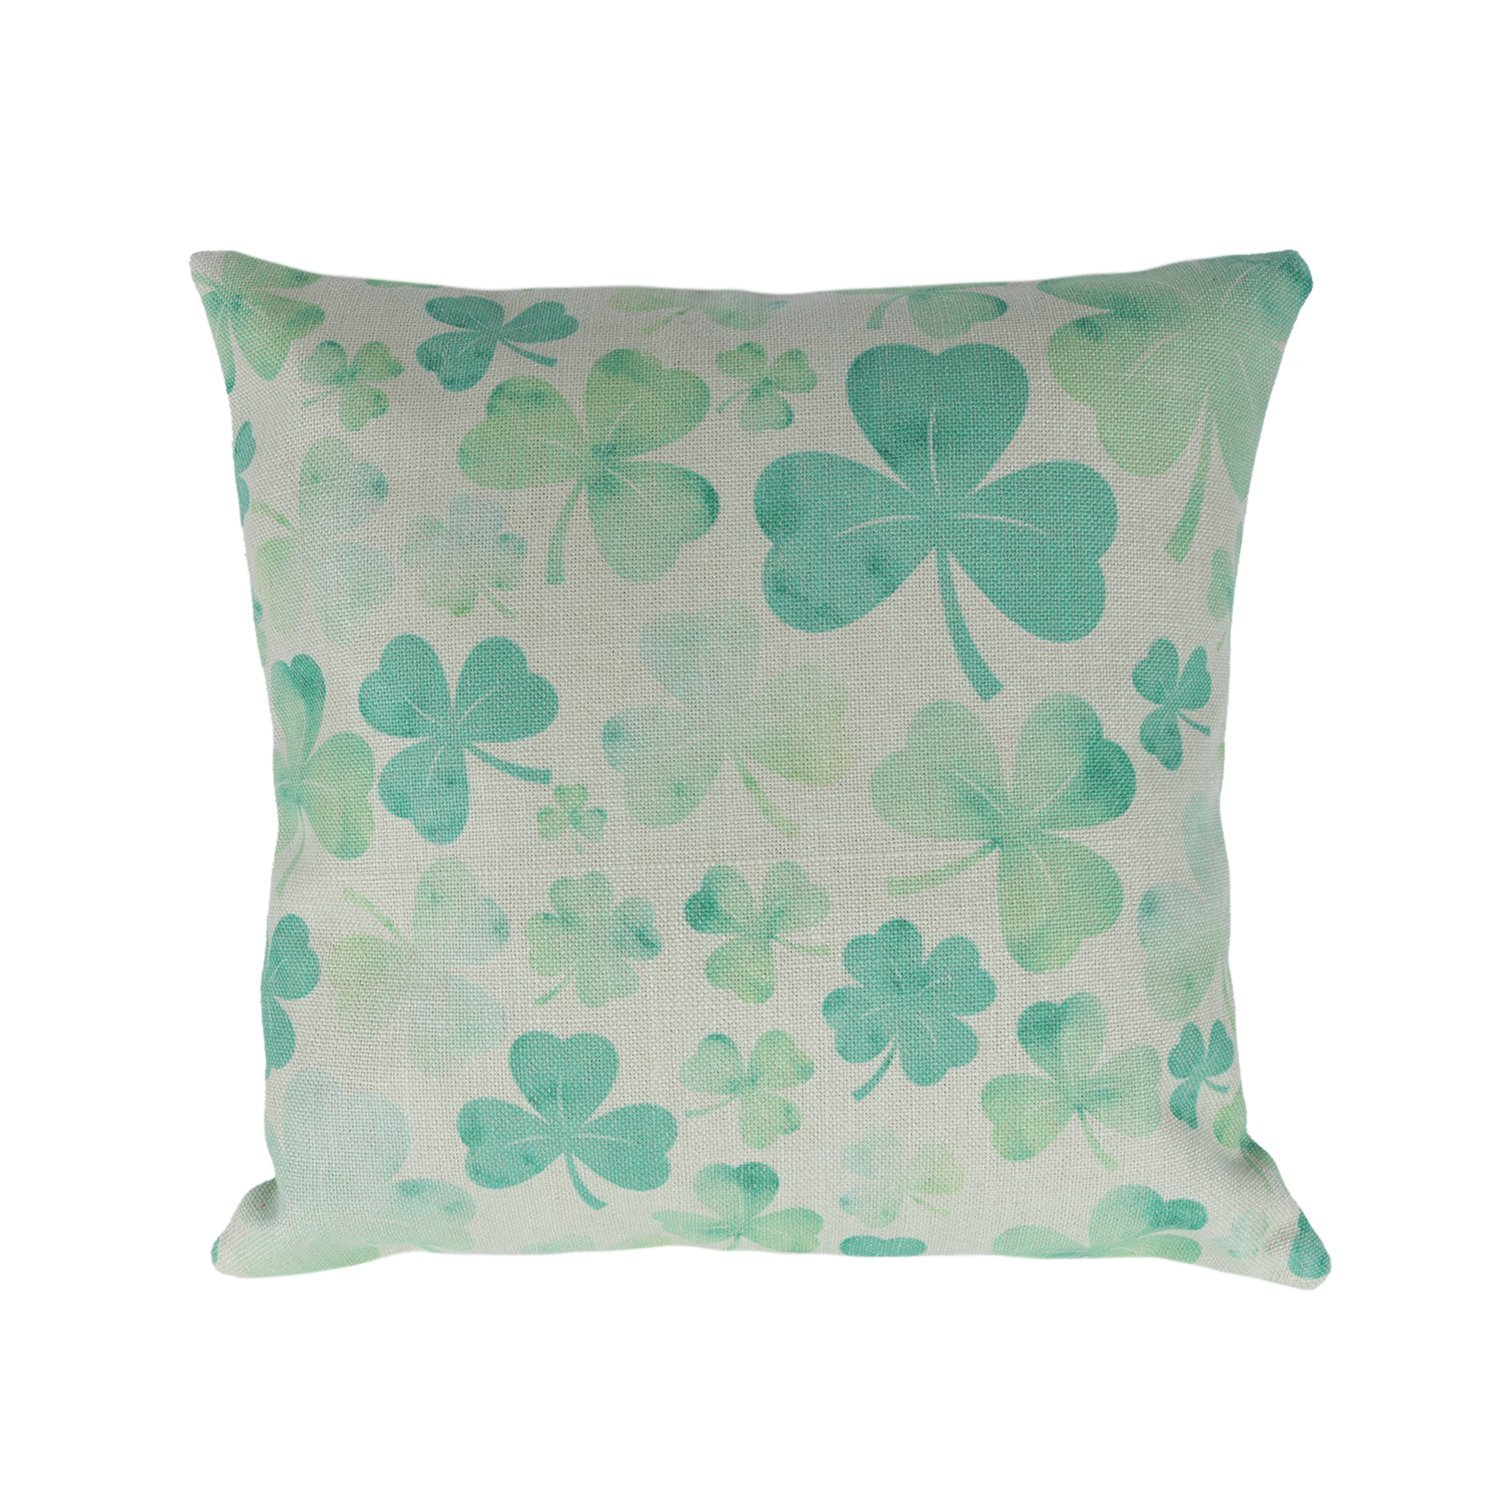 Spring Pillow Covers Under 10 The Creek Line House